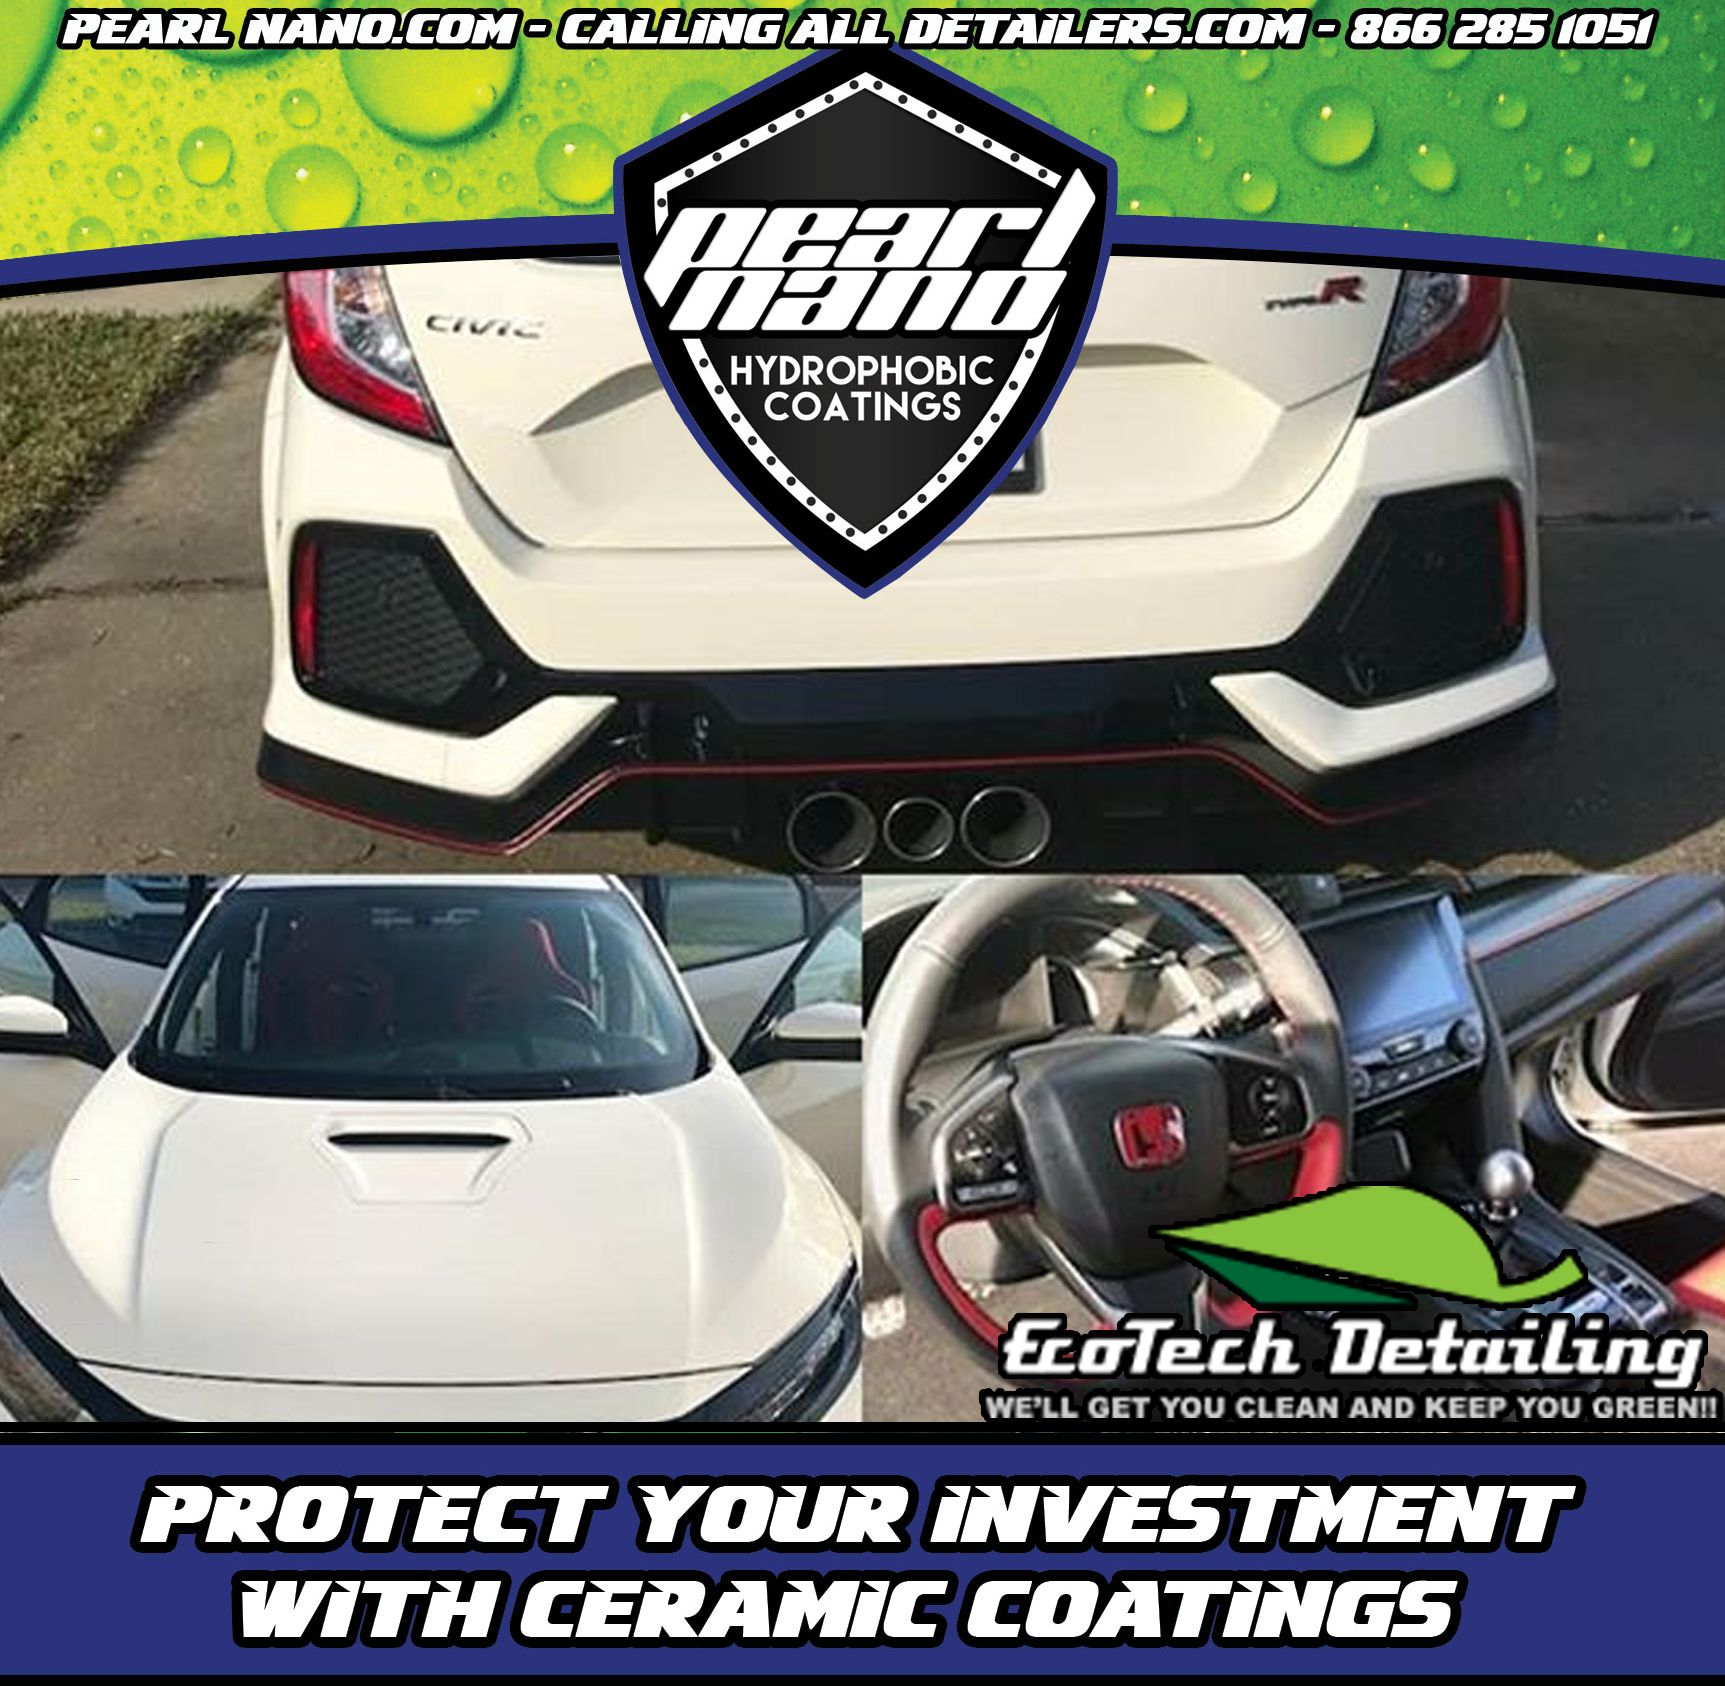 Honda Civic Type R 2017 Ceramic Coated with Pearl Nano by EcoTech